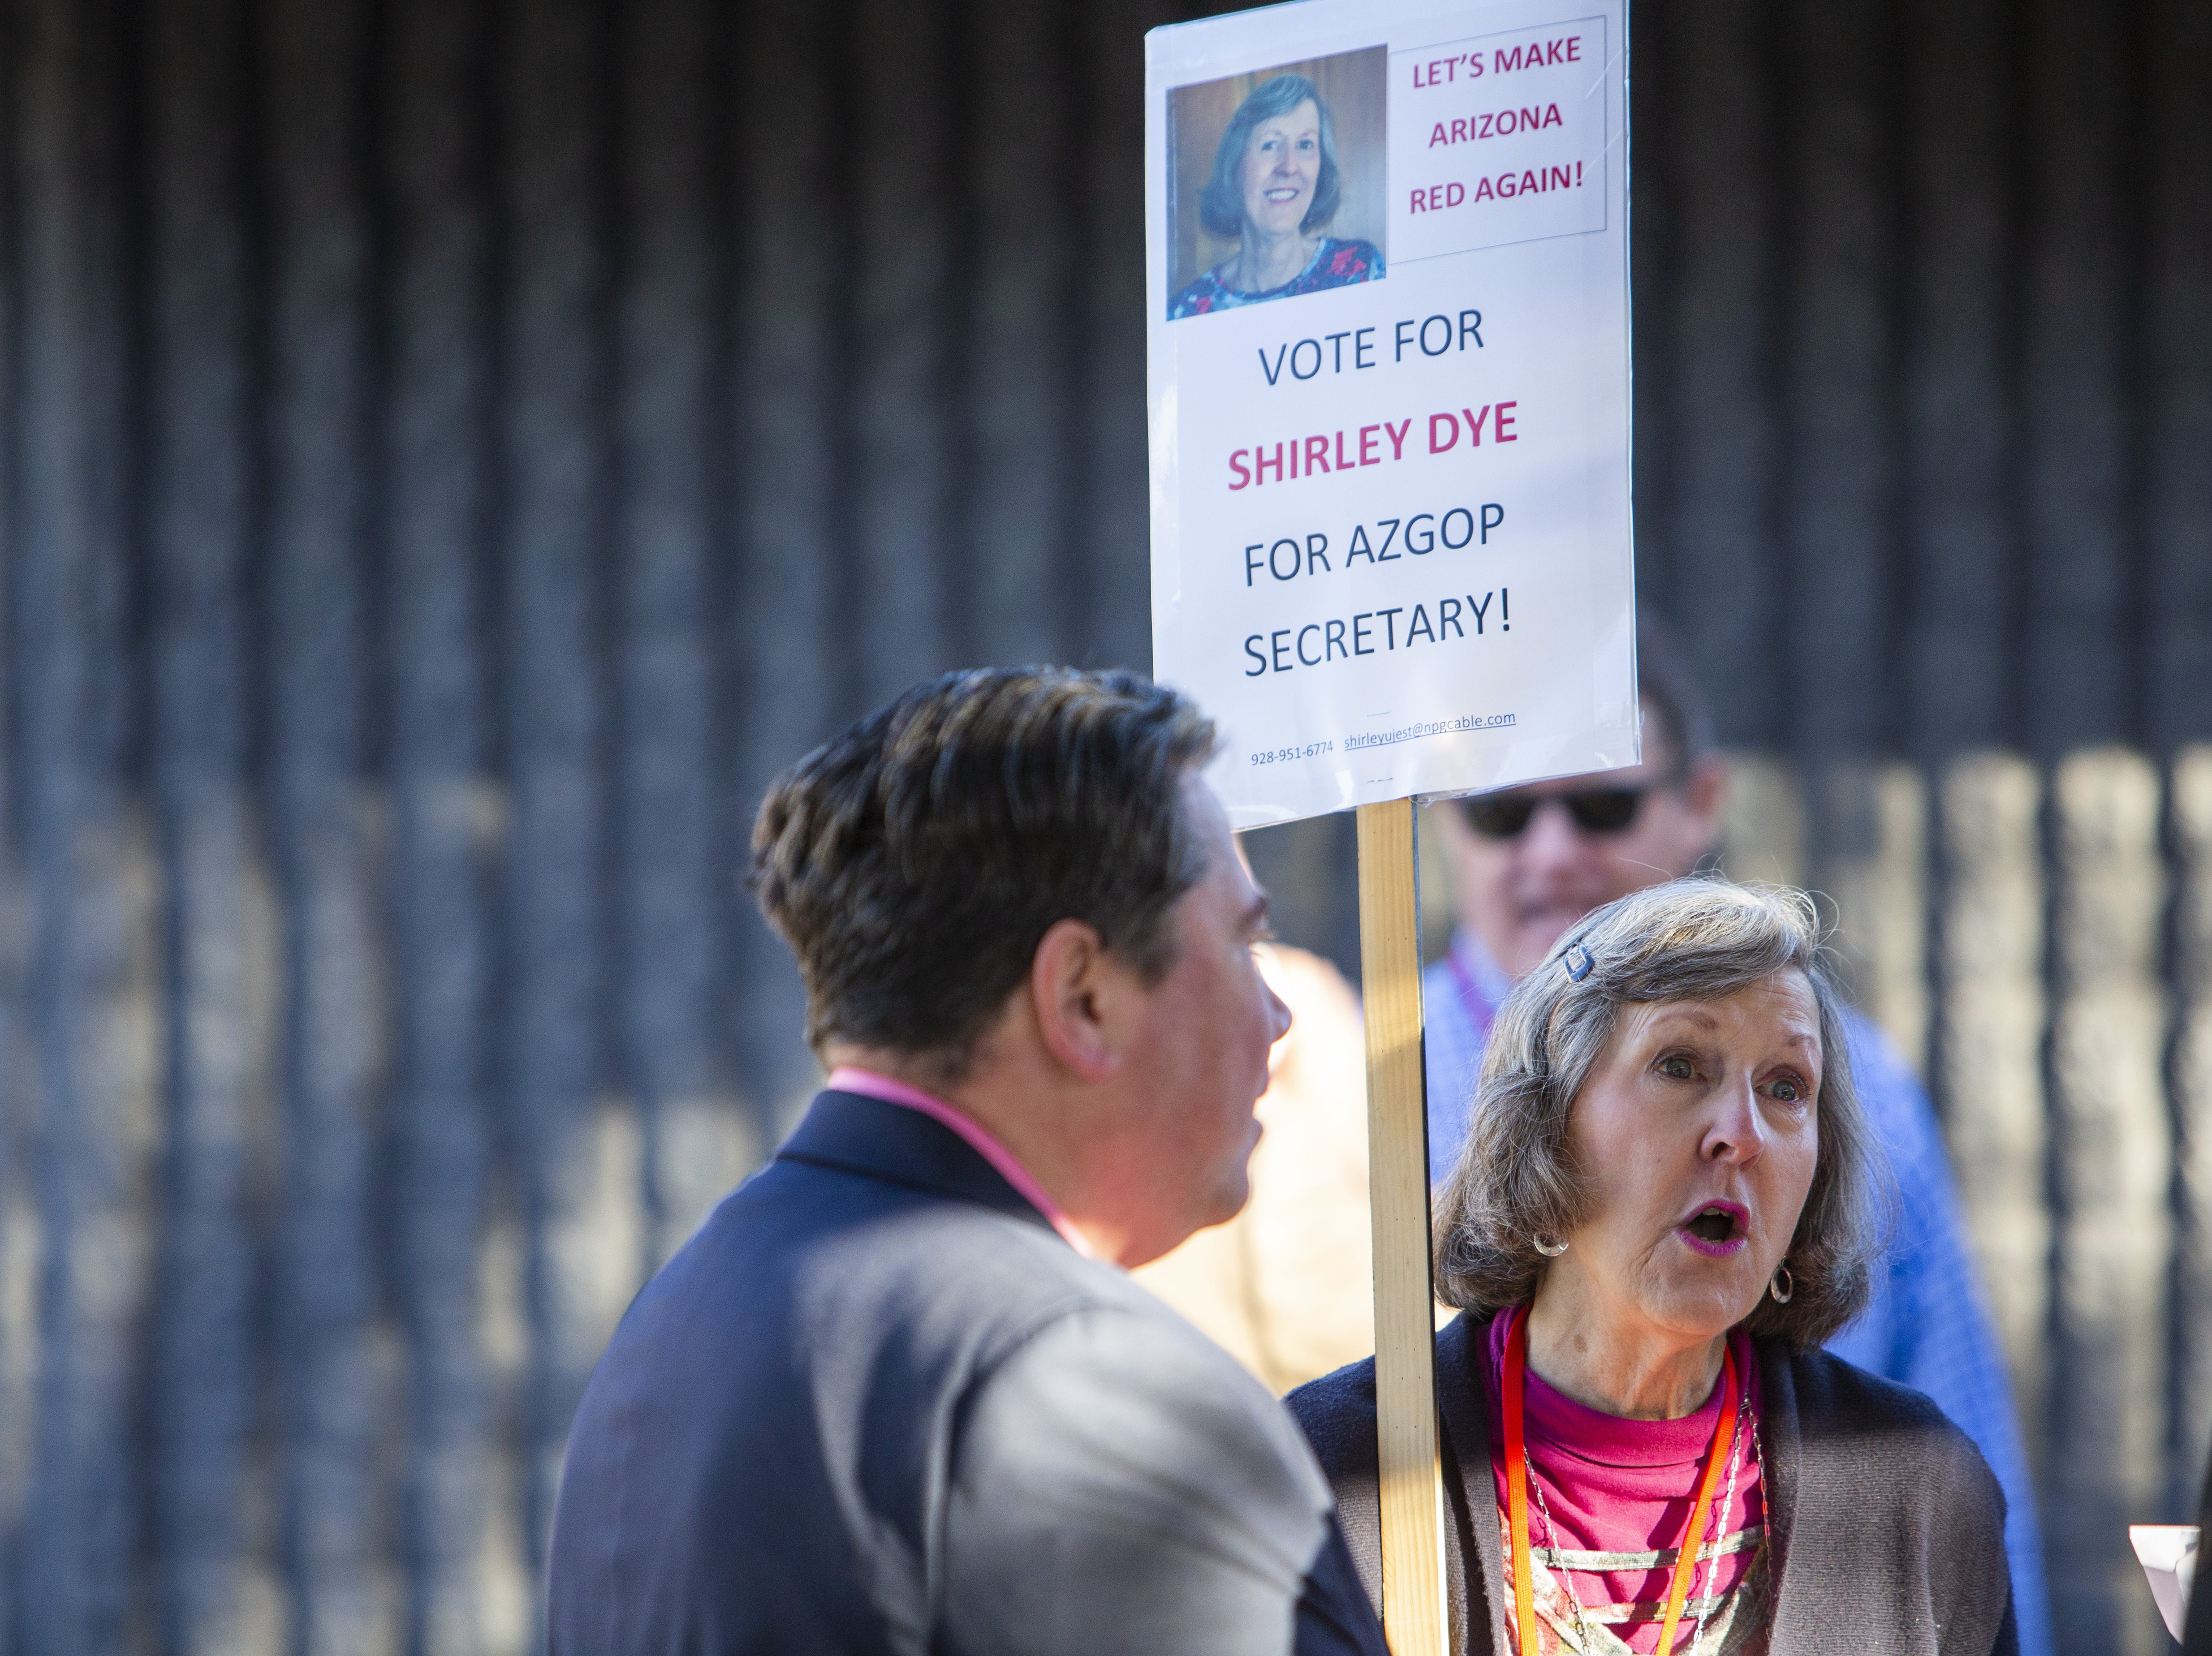 Shirley Dye, who is running for Secretary of the AZGOP, talks to people waiting outside the Church for the Nations where the Statutory Meeting of the State Committee of the Arizona Republican Party was held on Saturday, Jan. 26, 2019.